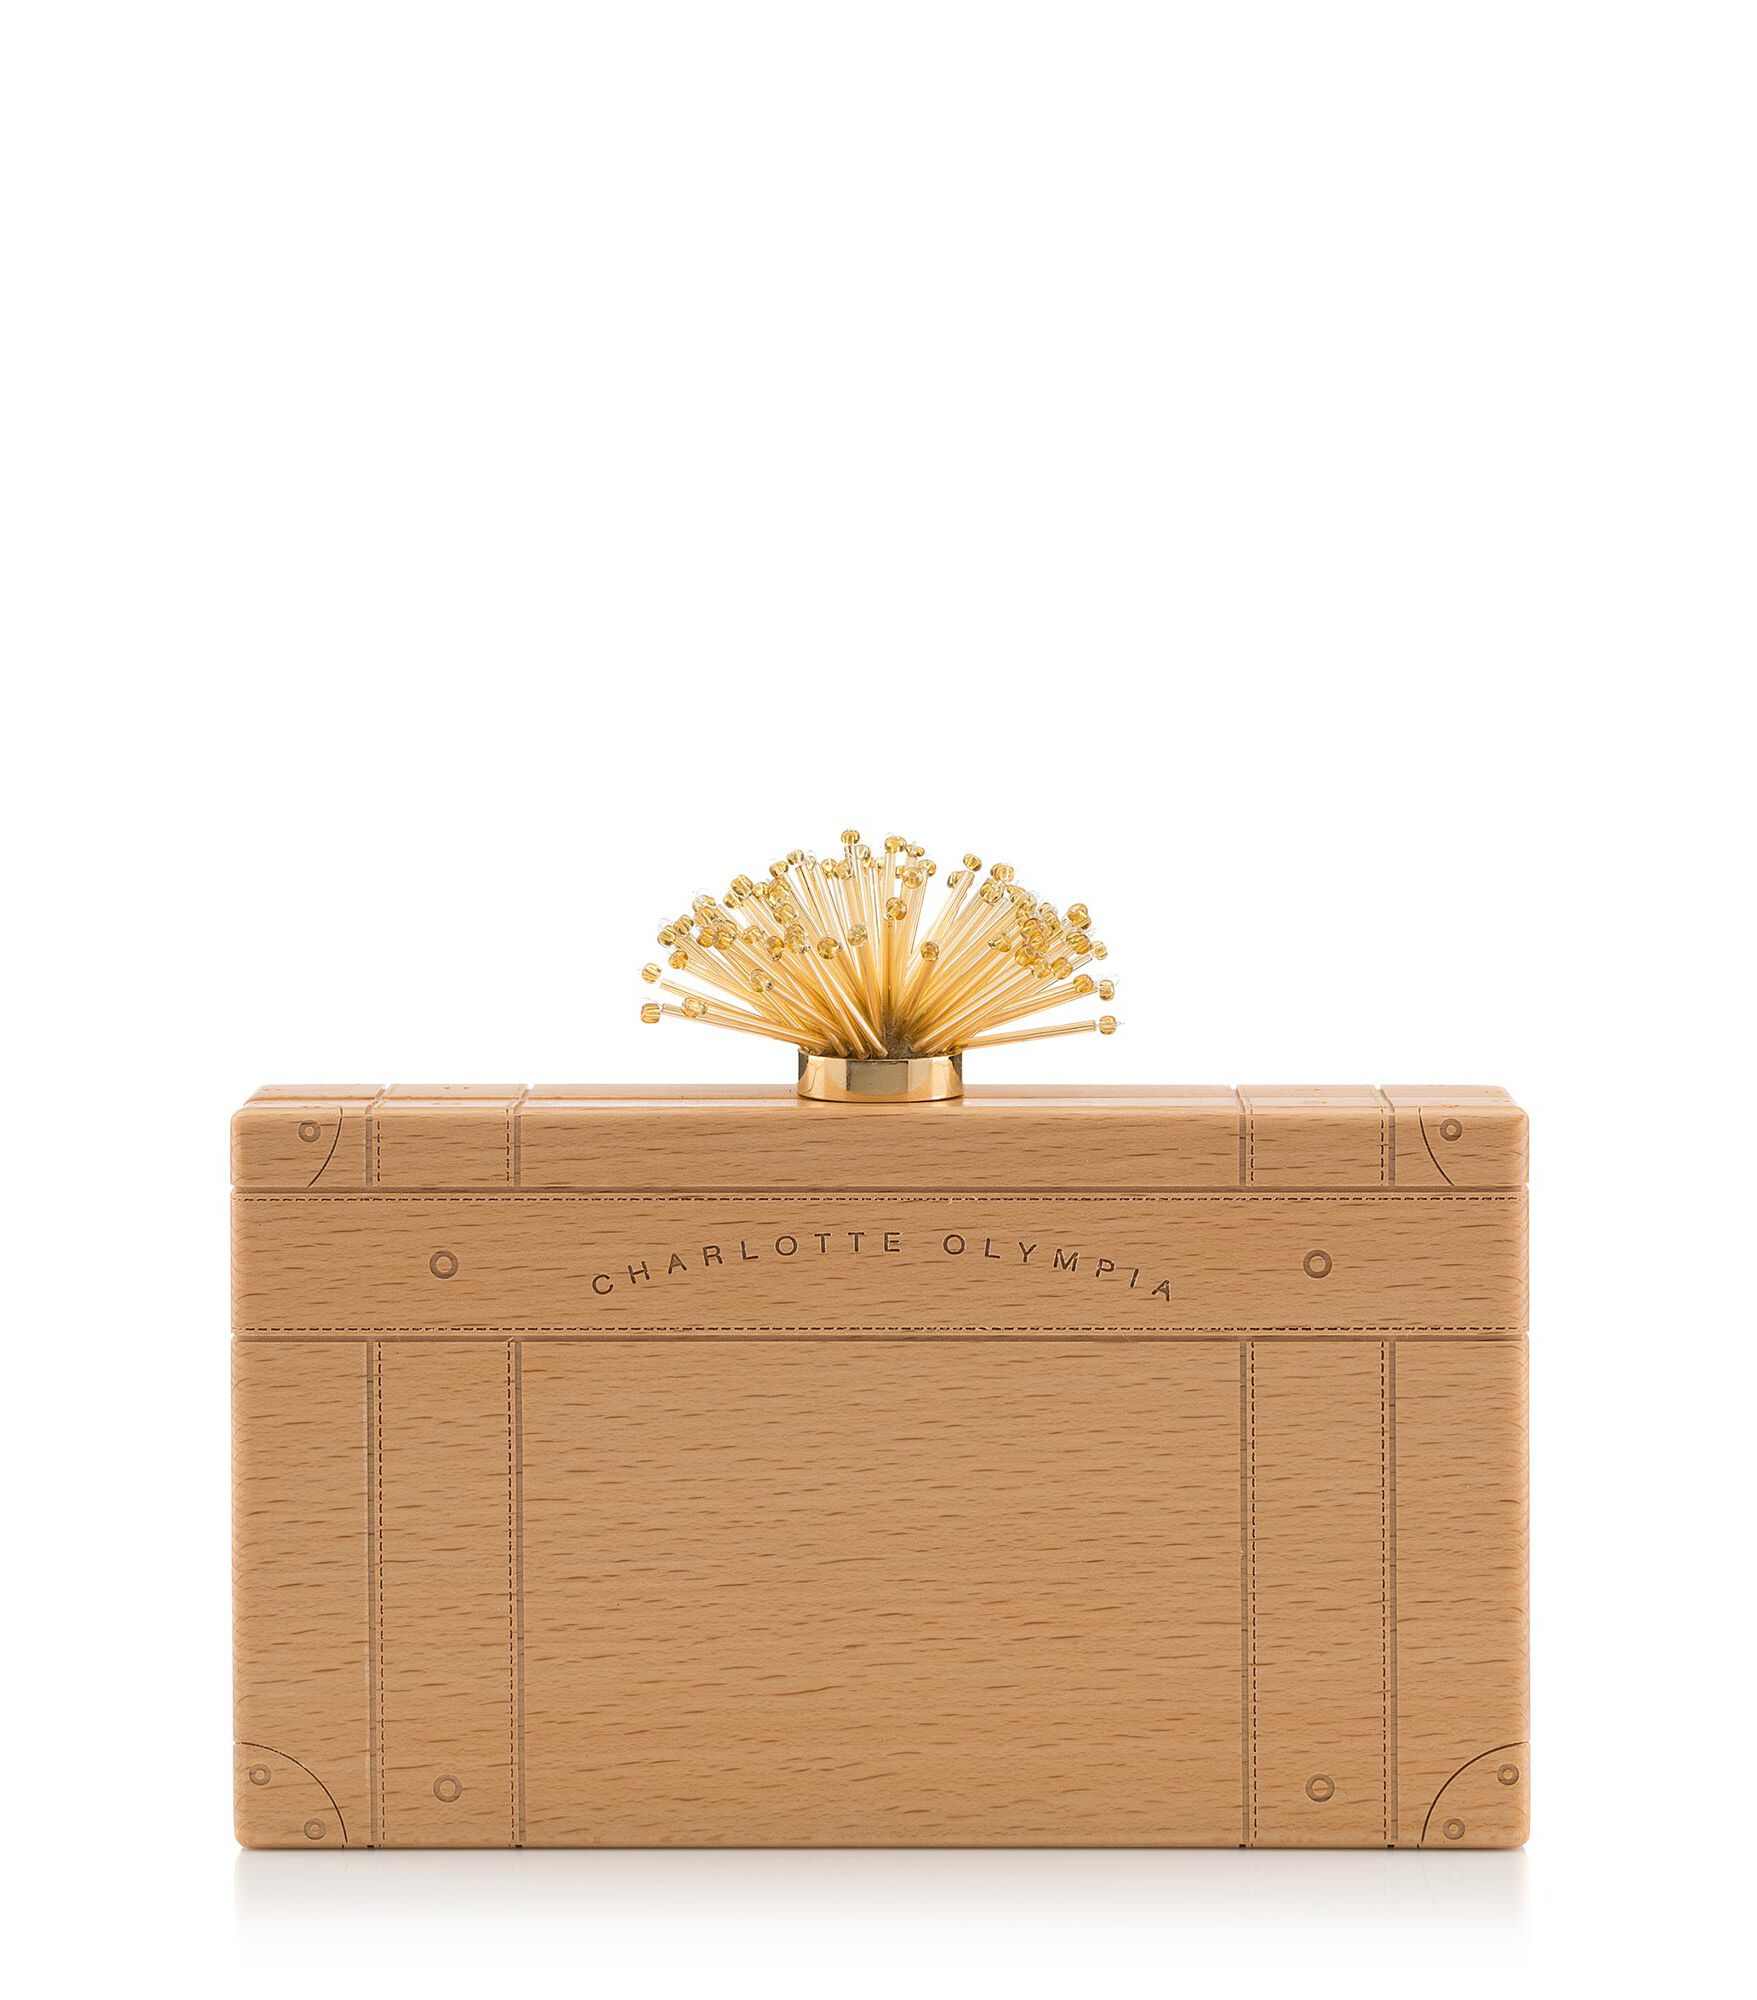 Charlotte Olympia Clutch and Handbags Women - PANDORA VC NATURAL & GOLD WOOD OS